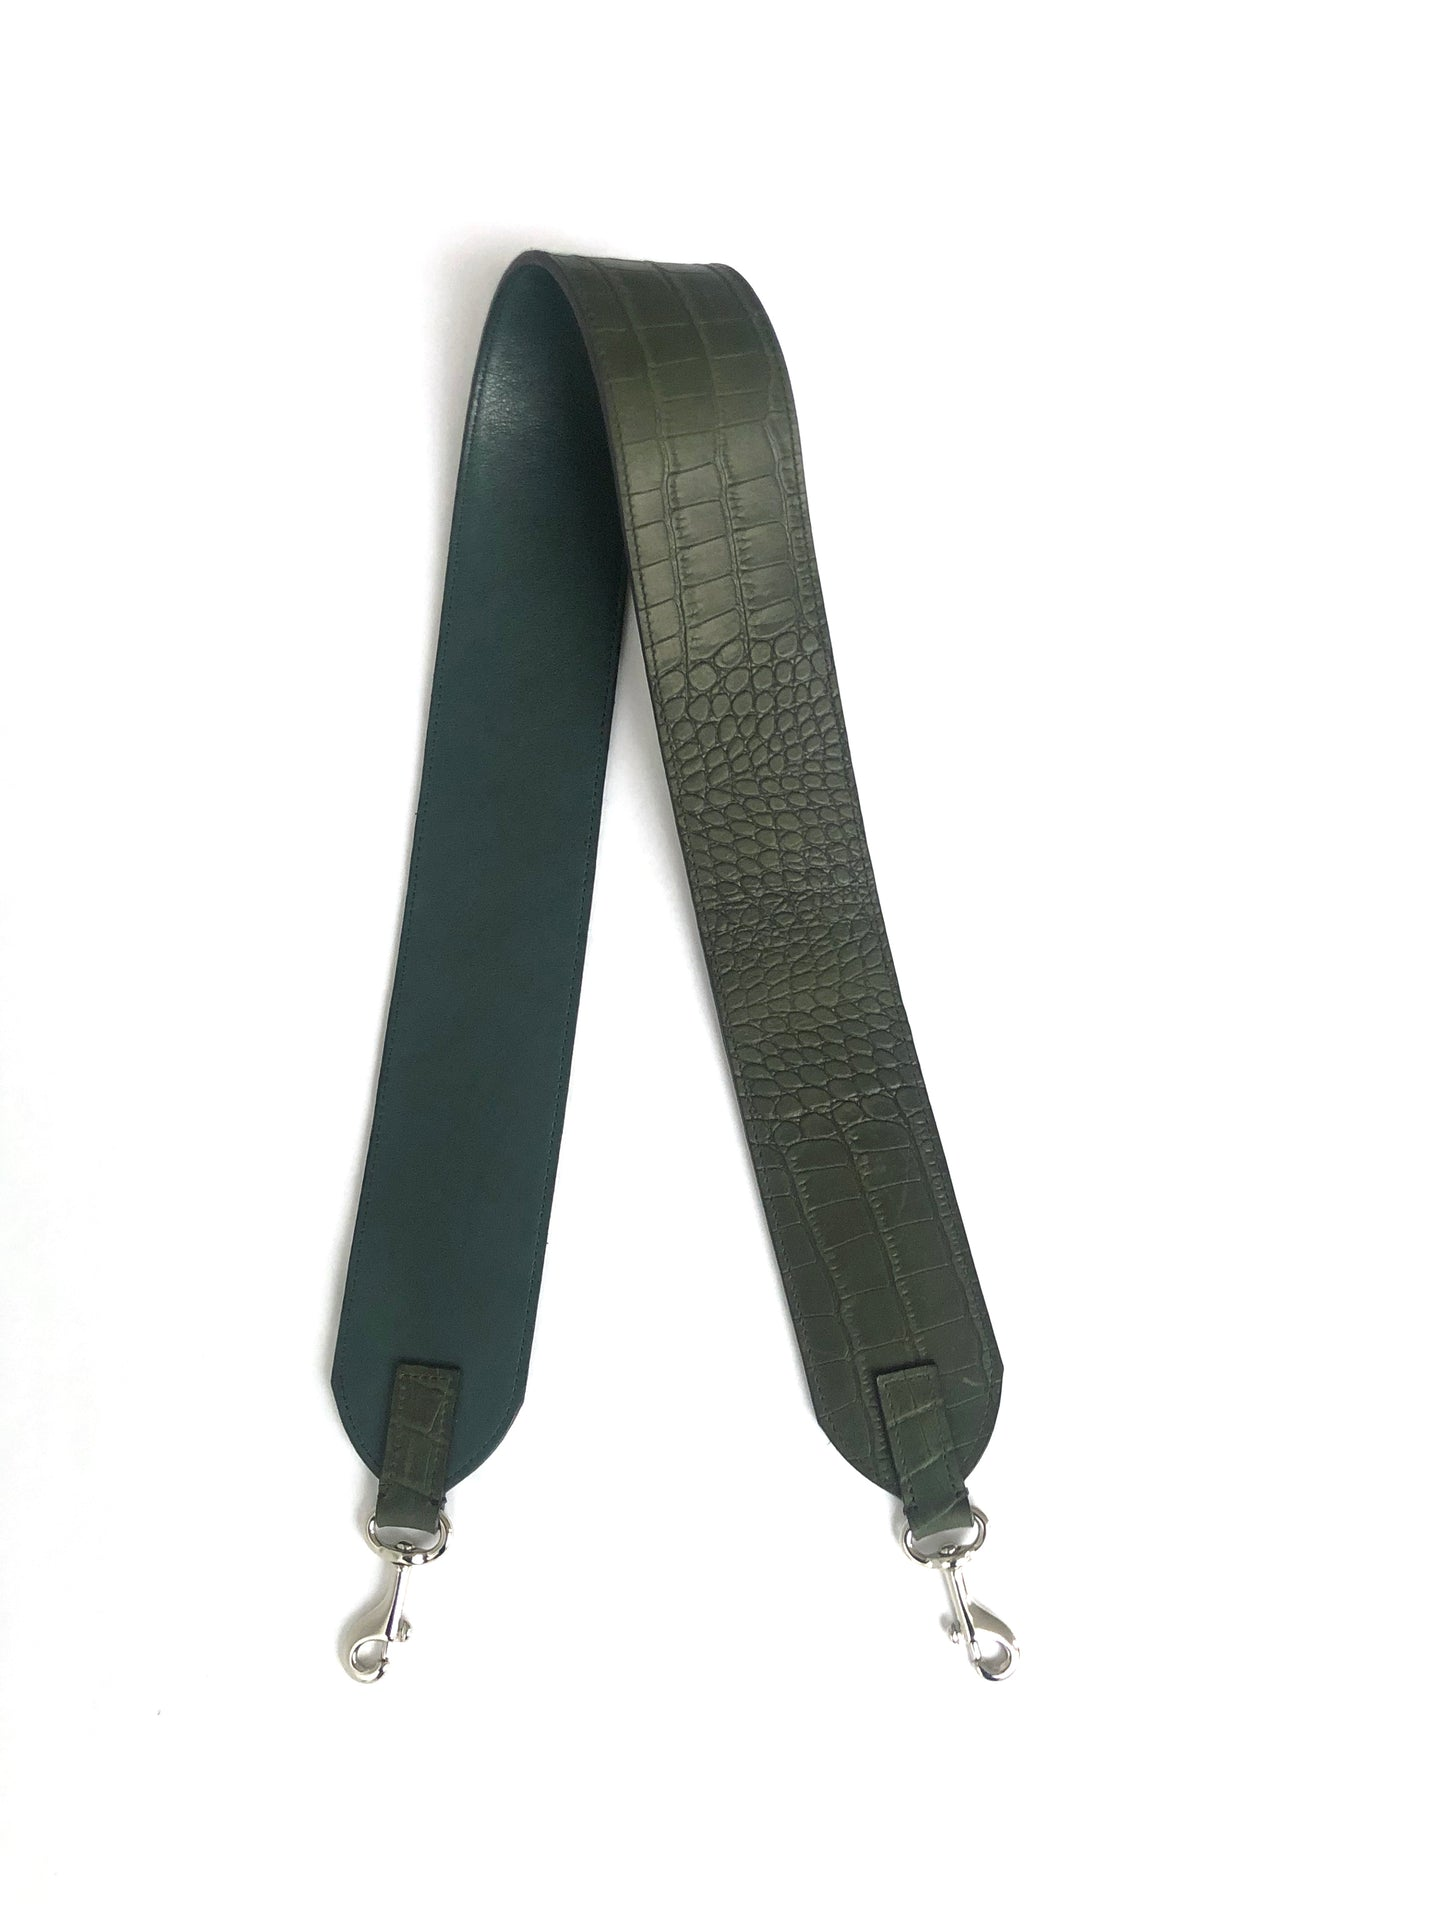 Leather strap for Meletti bag in Croco Green